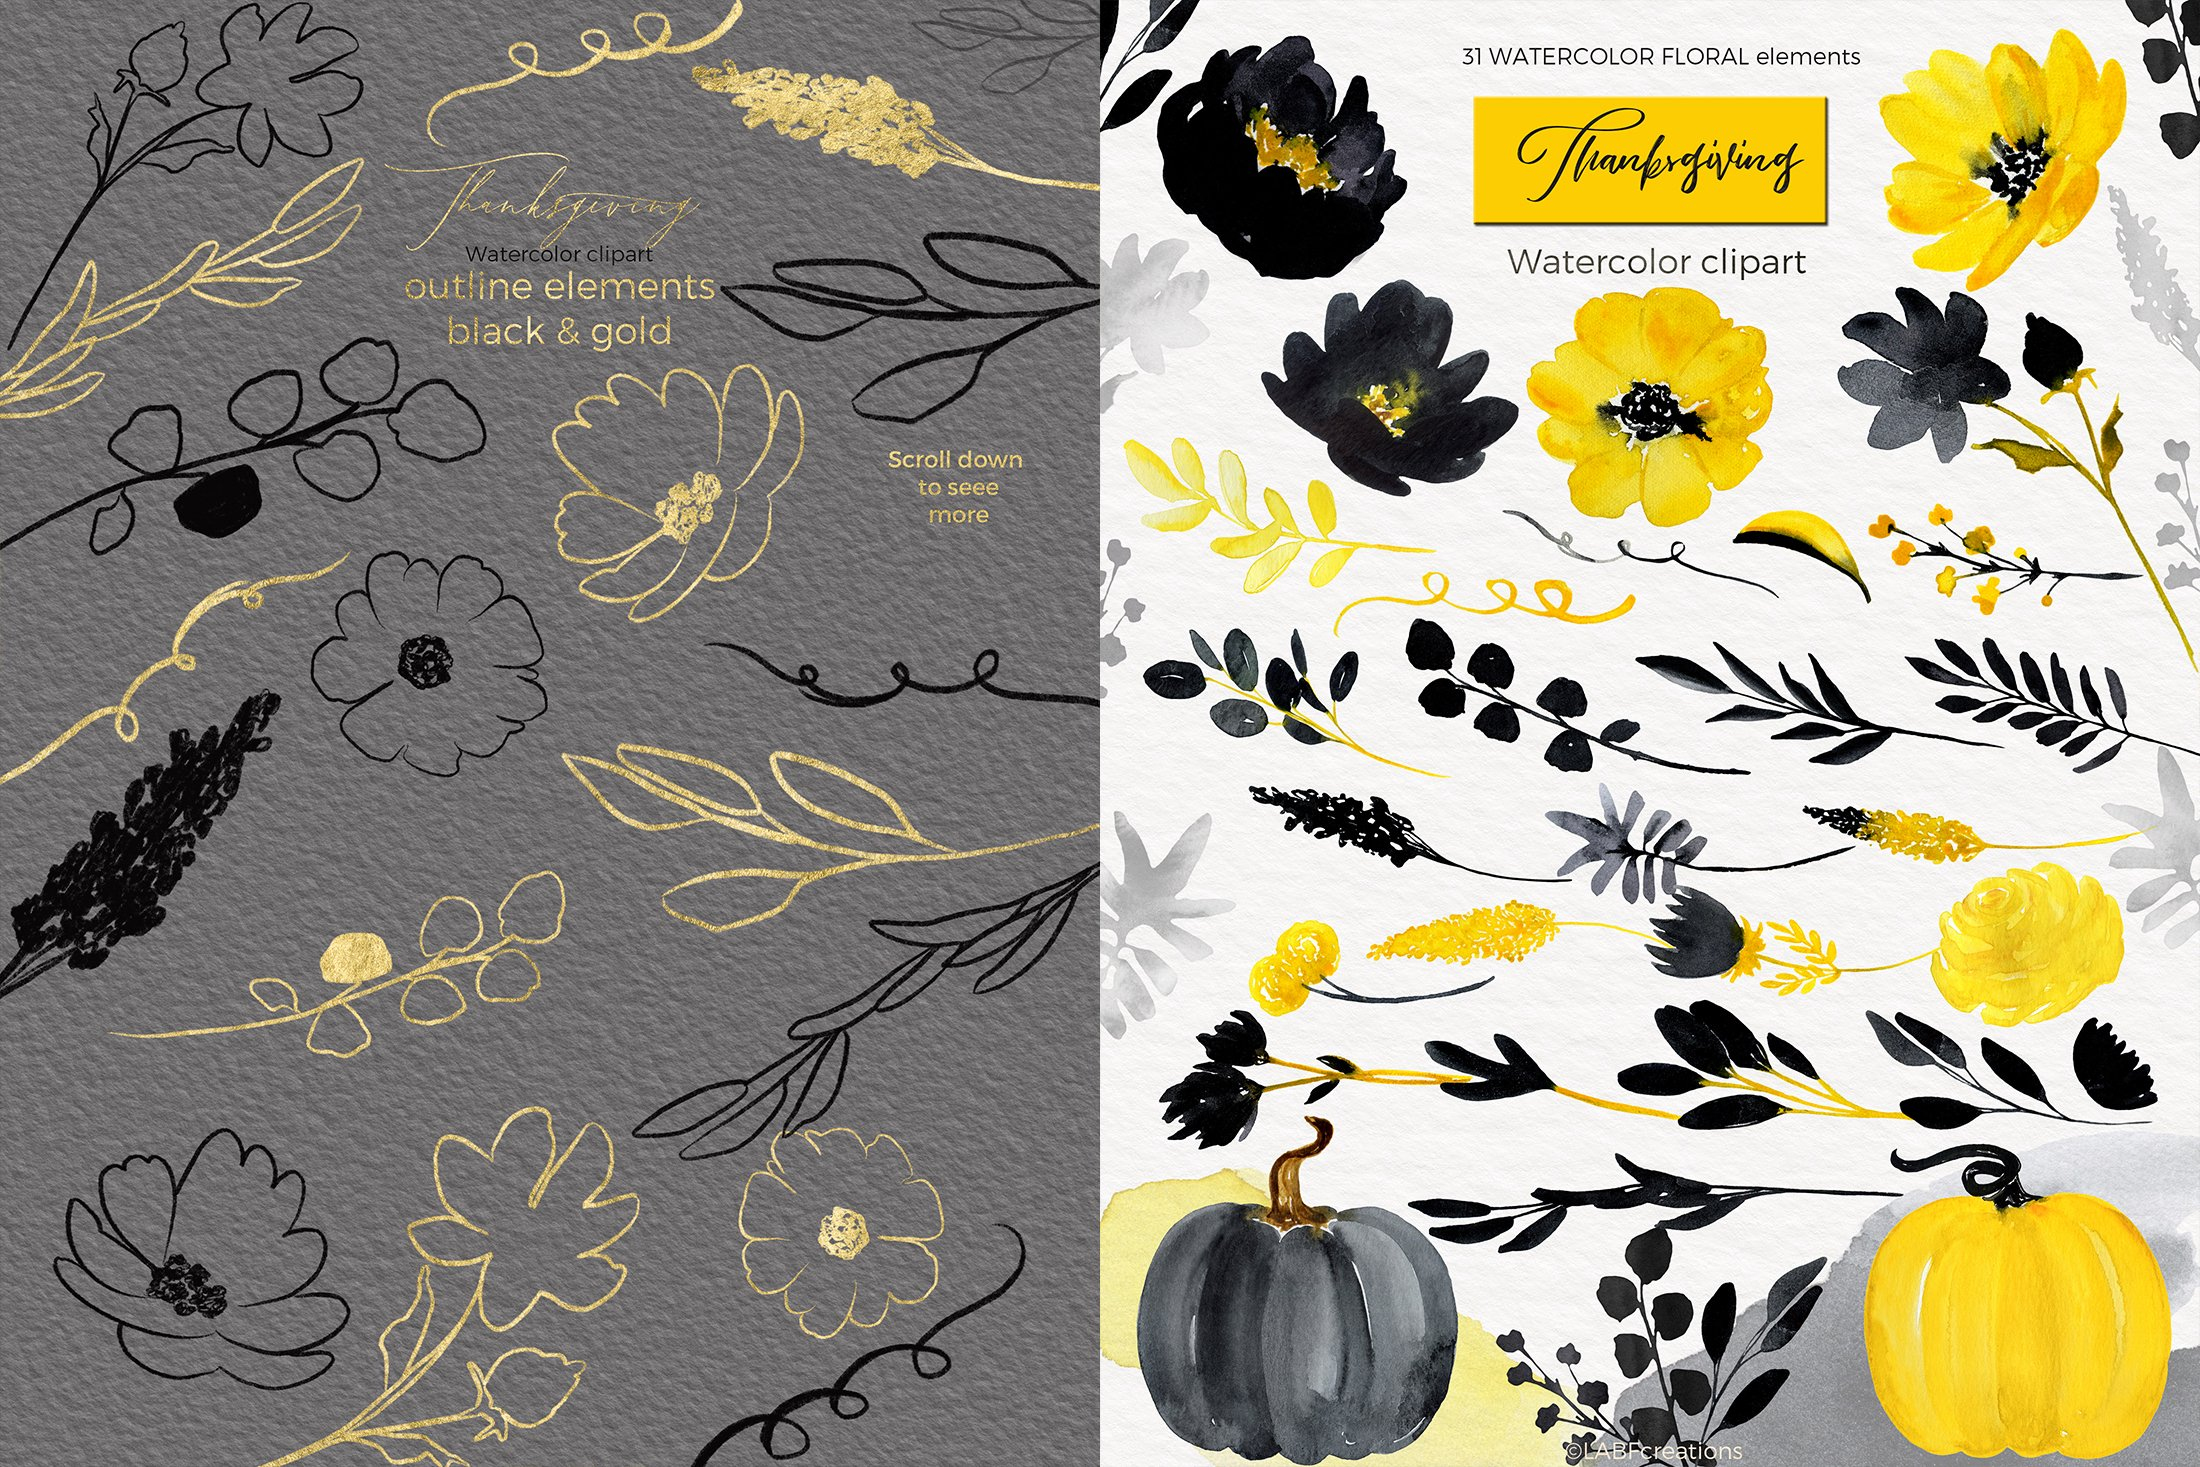 Thanksgiving. Black & Yellow Watercolor flowers example image 7